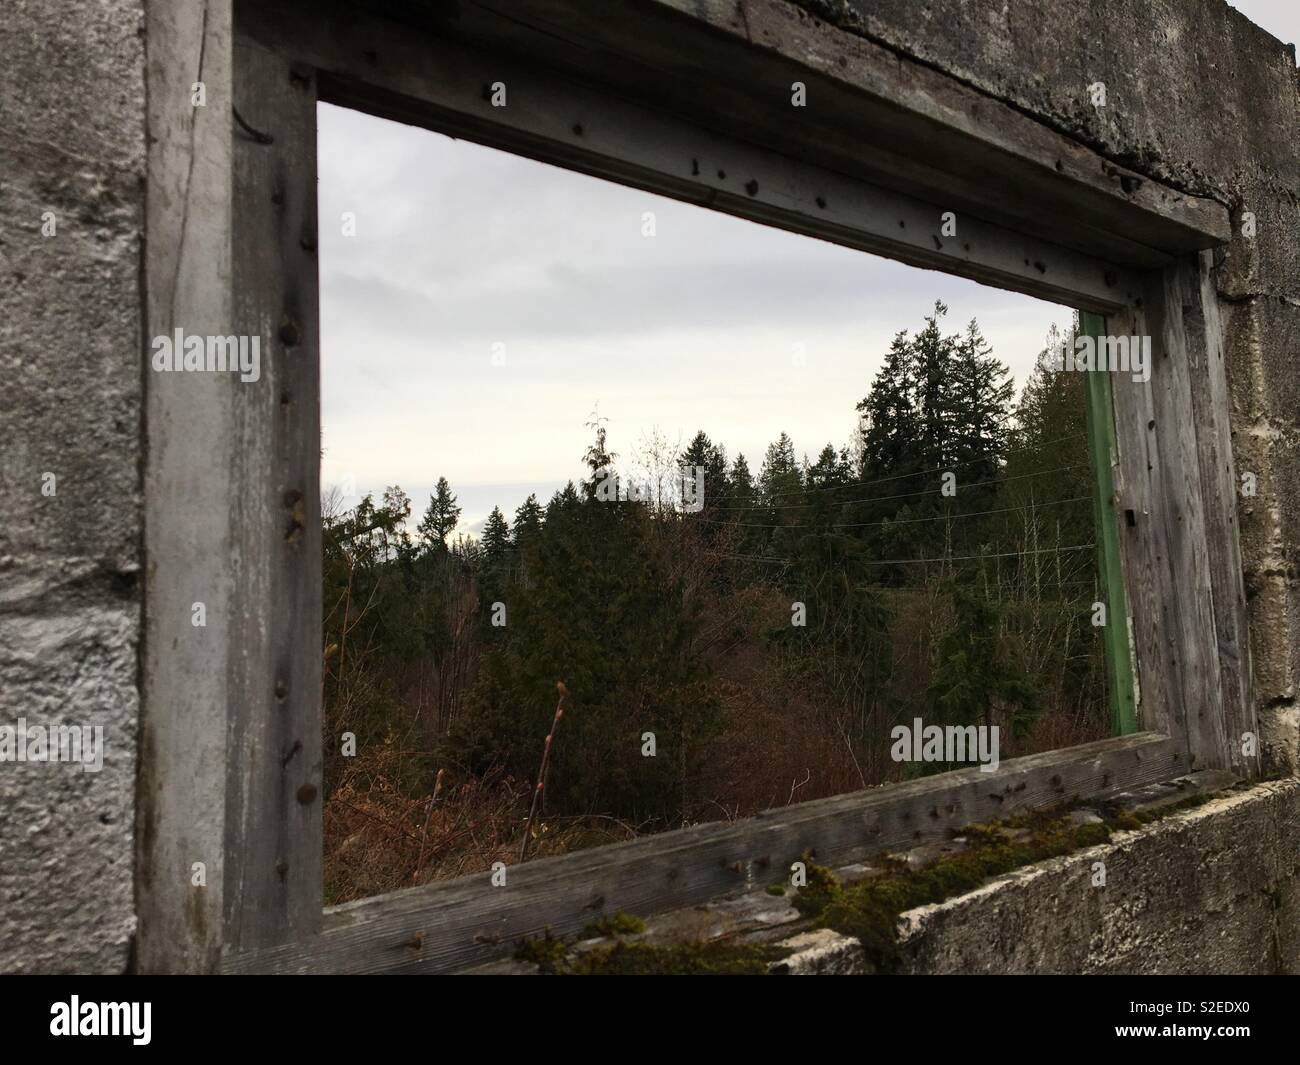 Brick ruins facing out a wood framed window towards a forest - Stock Image